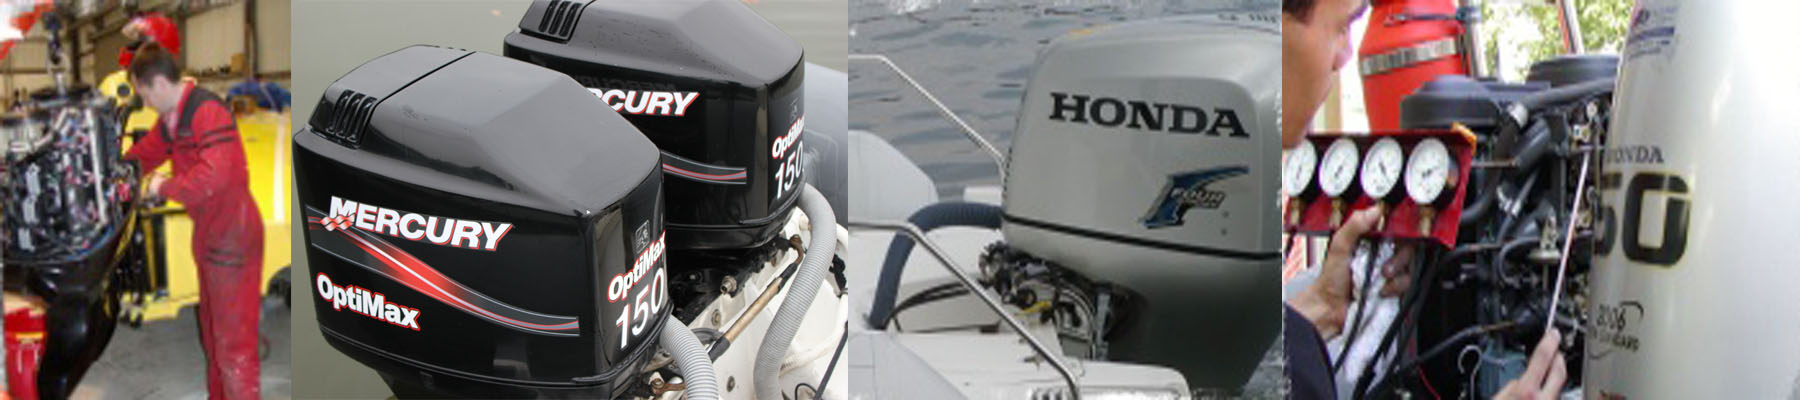 outboard-service.jpg